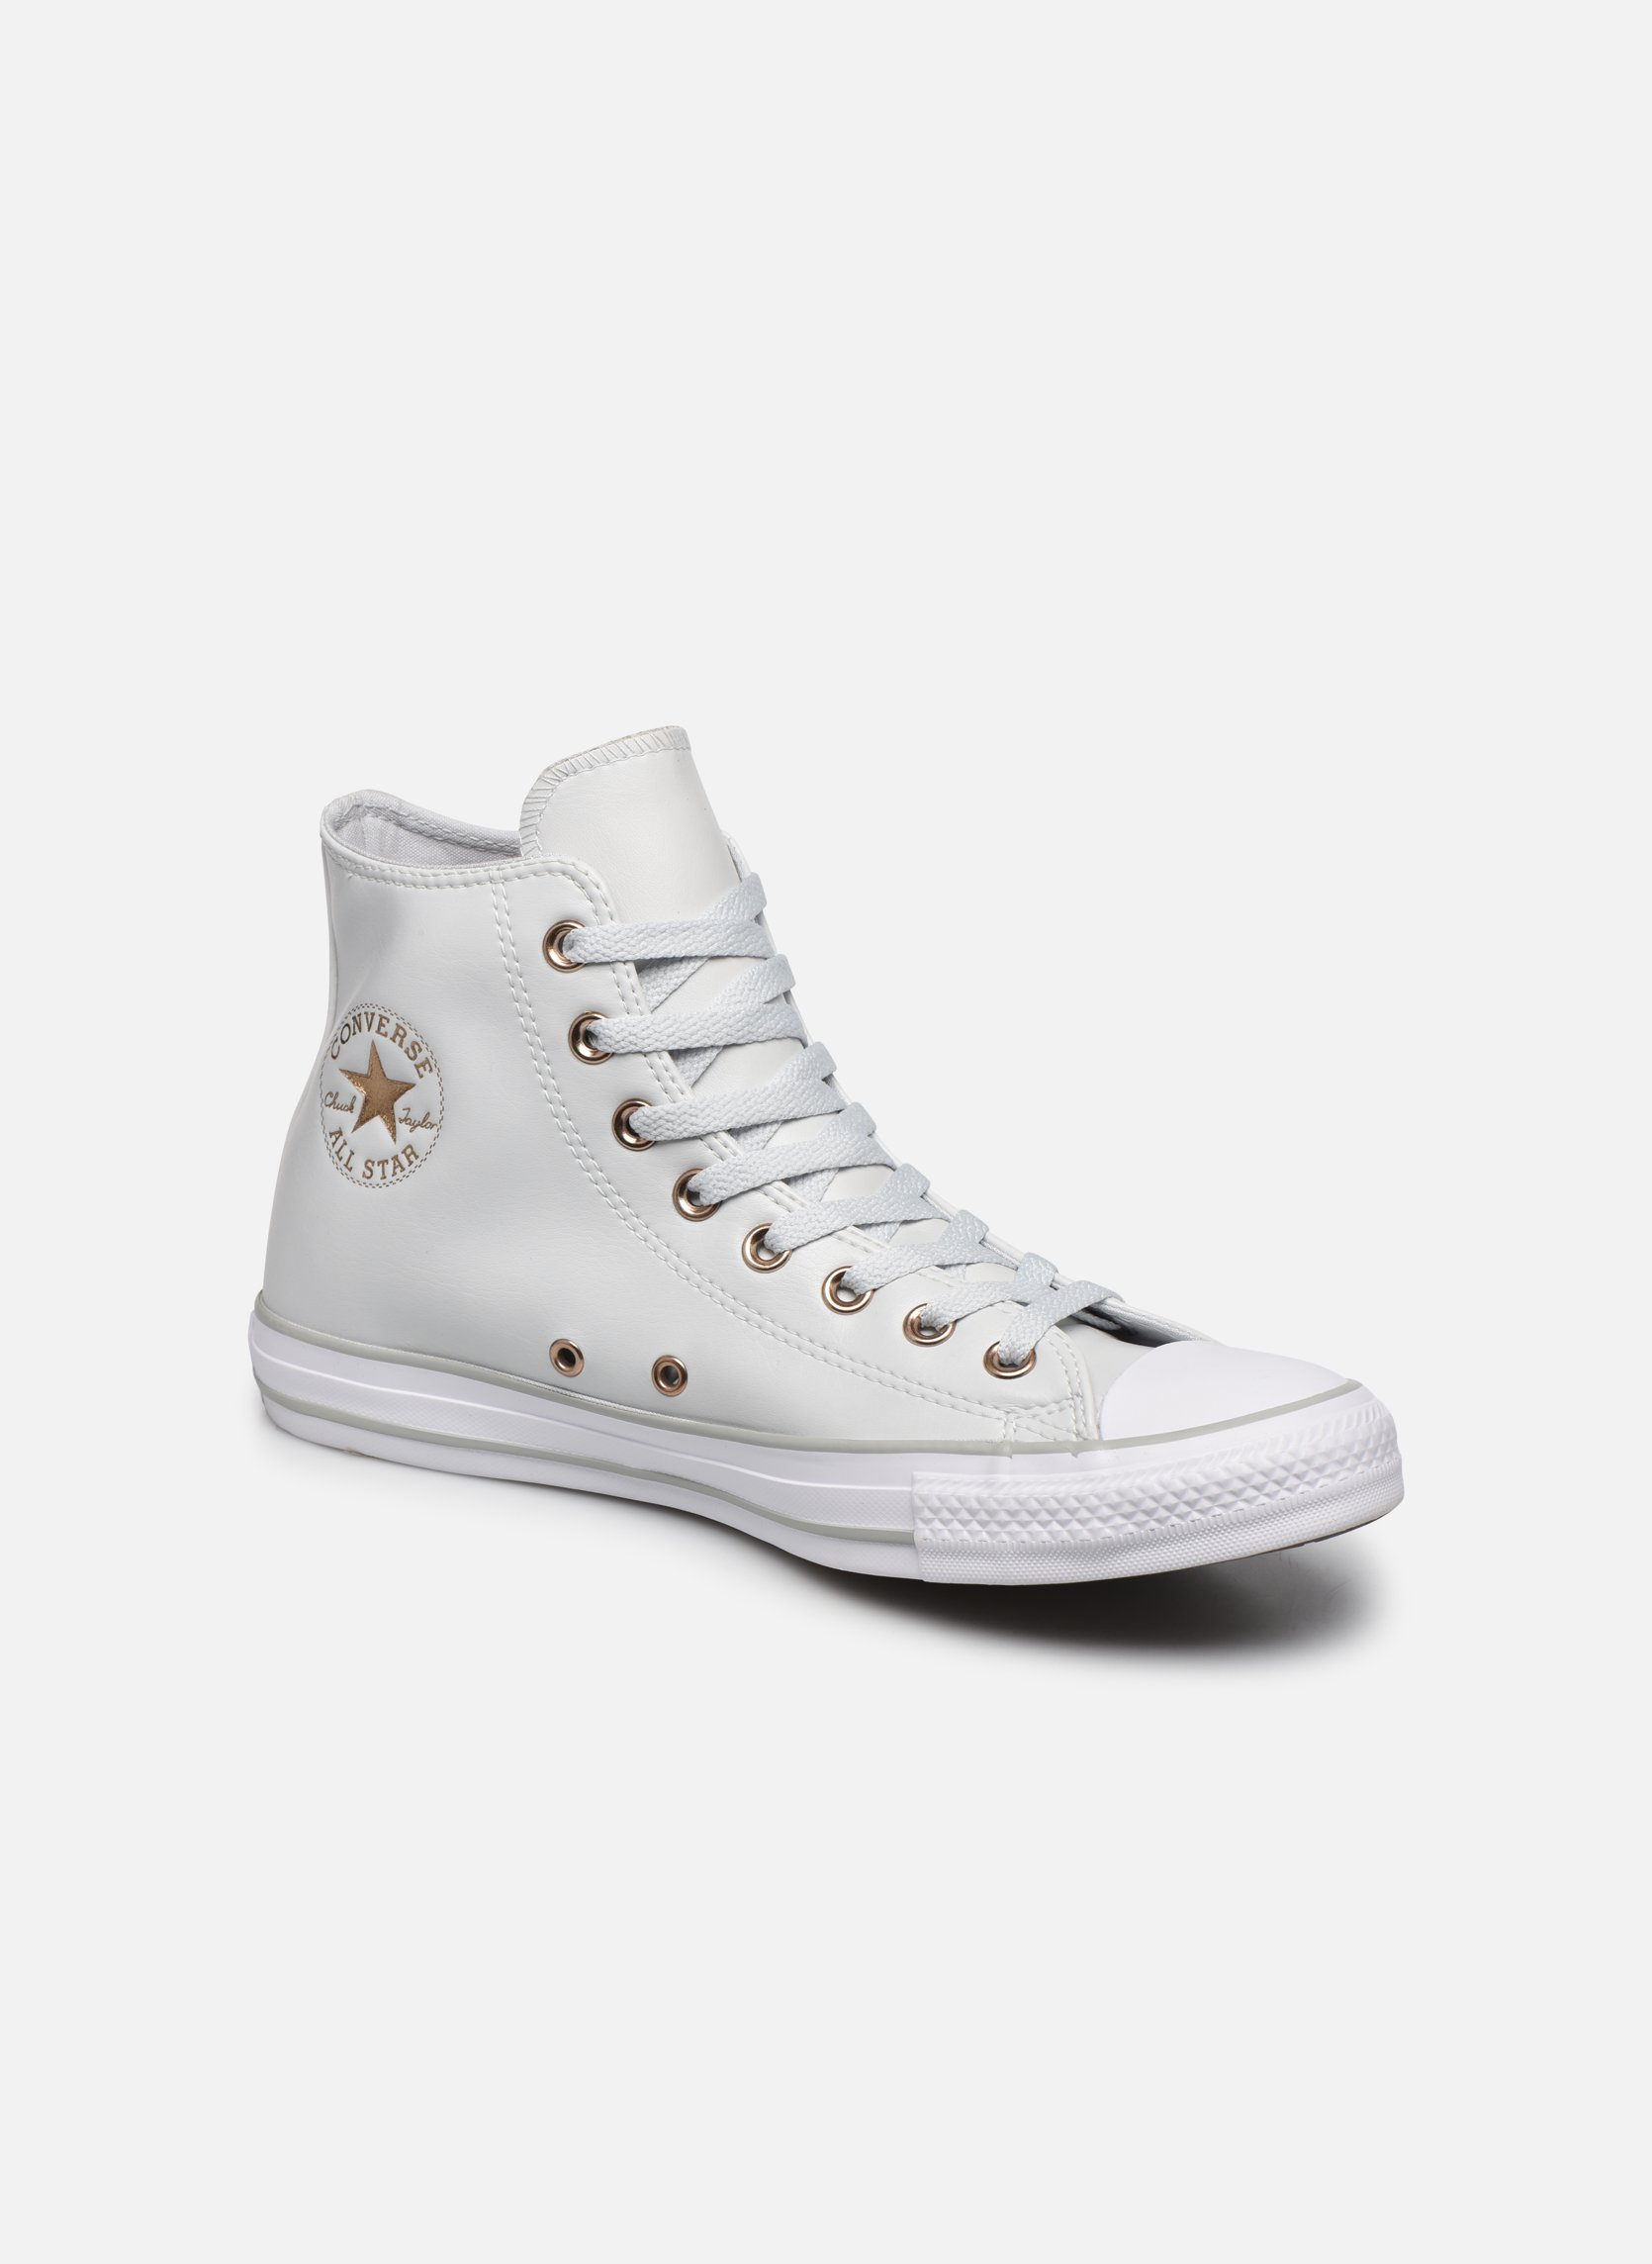 Chuck Taylor All Star Craft SL Hi Pure Platinum/White/Mouse